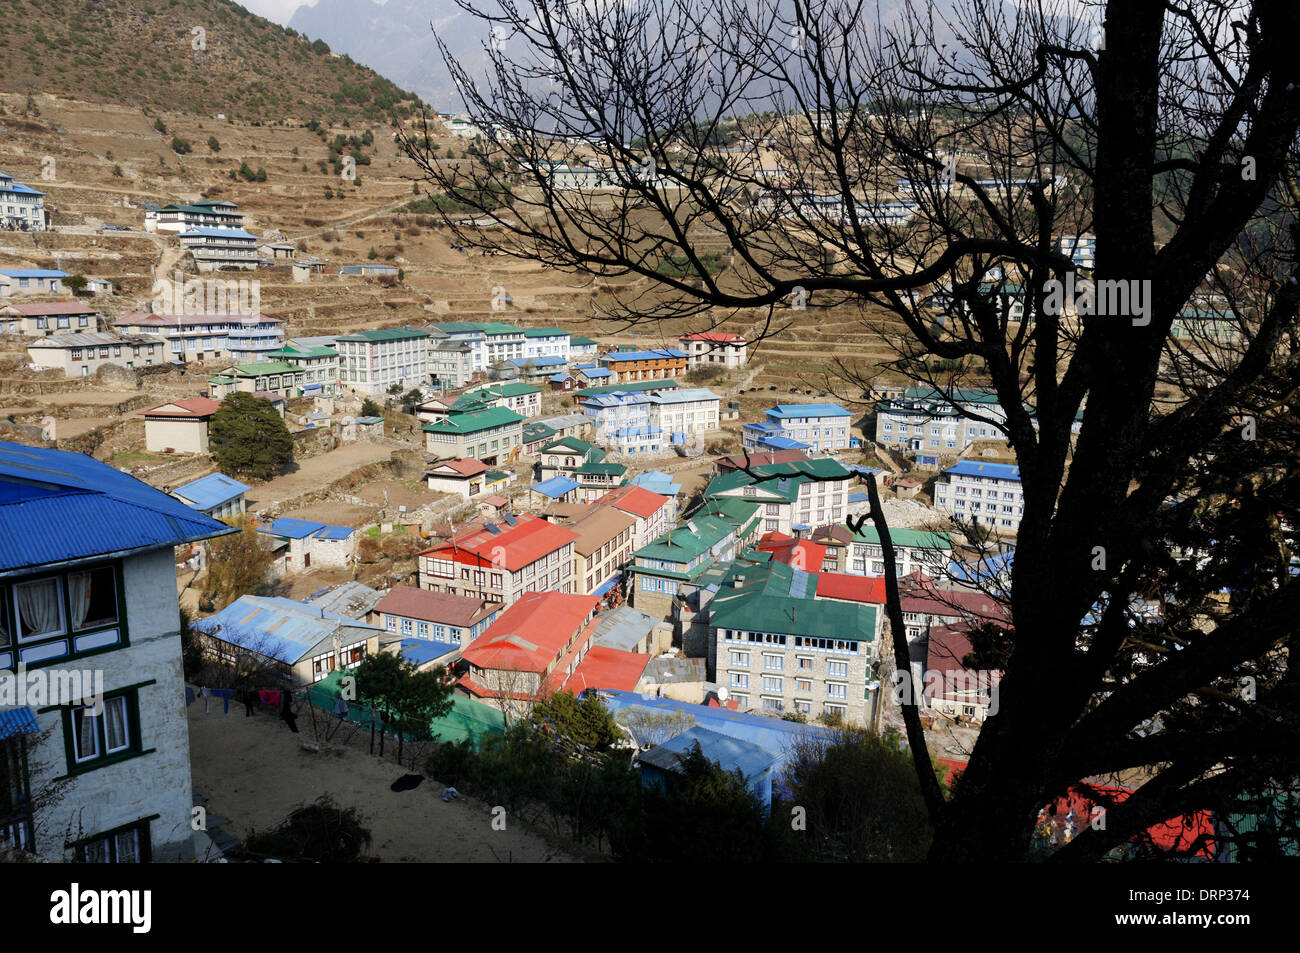 A view across Namche Bazaar, the capital of the Khumbu region of Nepal - Stock Image